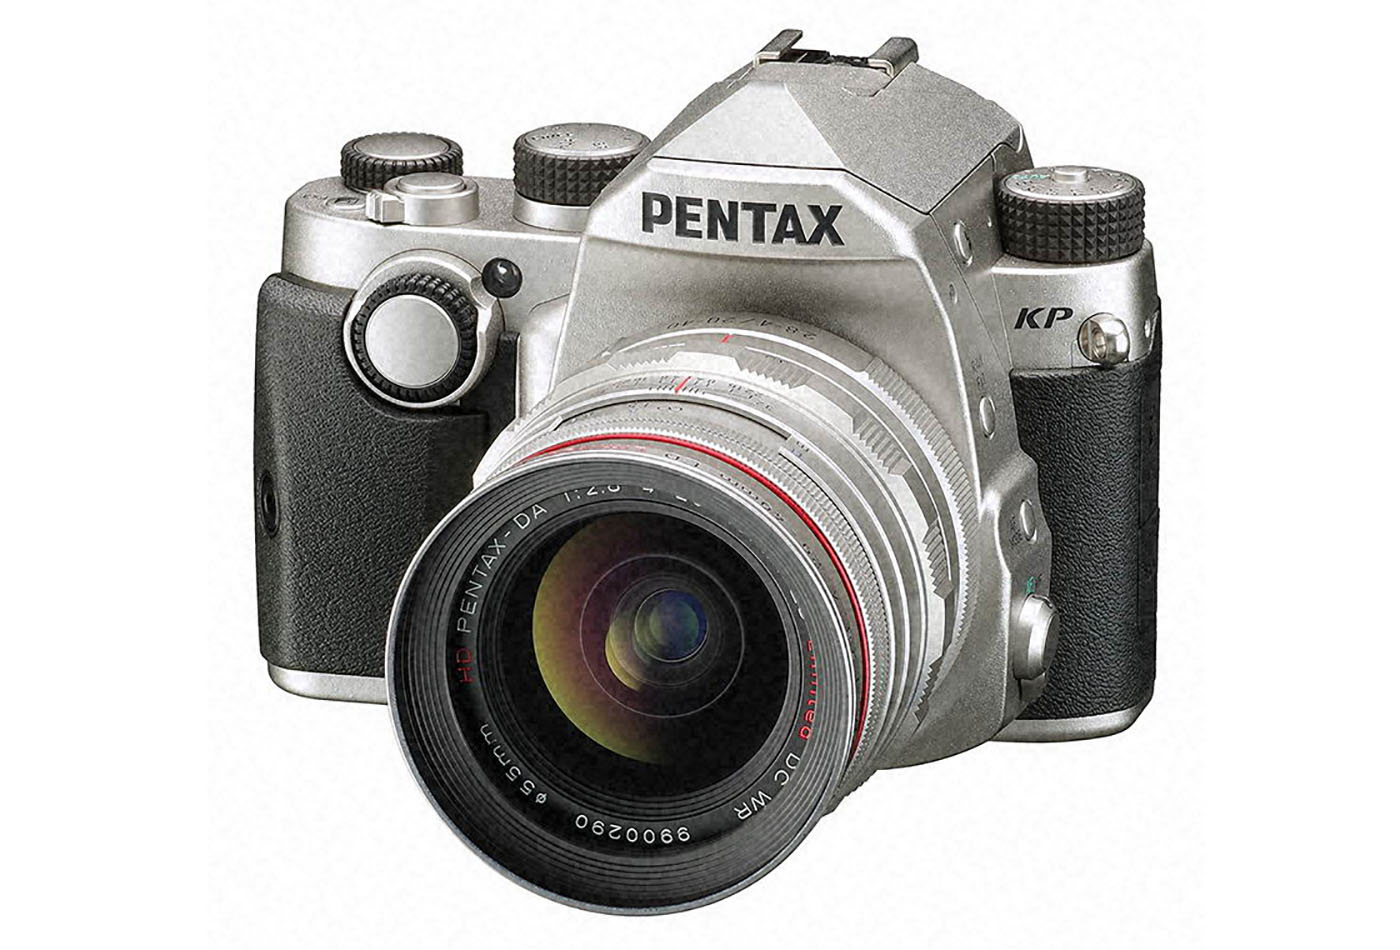 Pentax's new KP DSLR shoots in incredibly low light